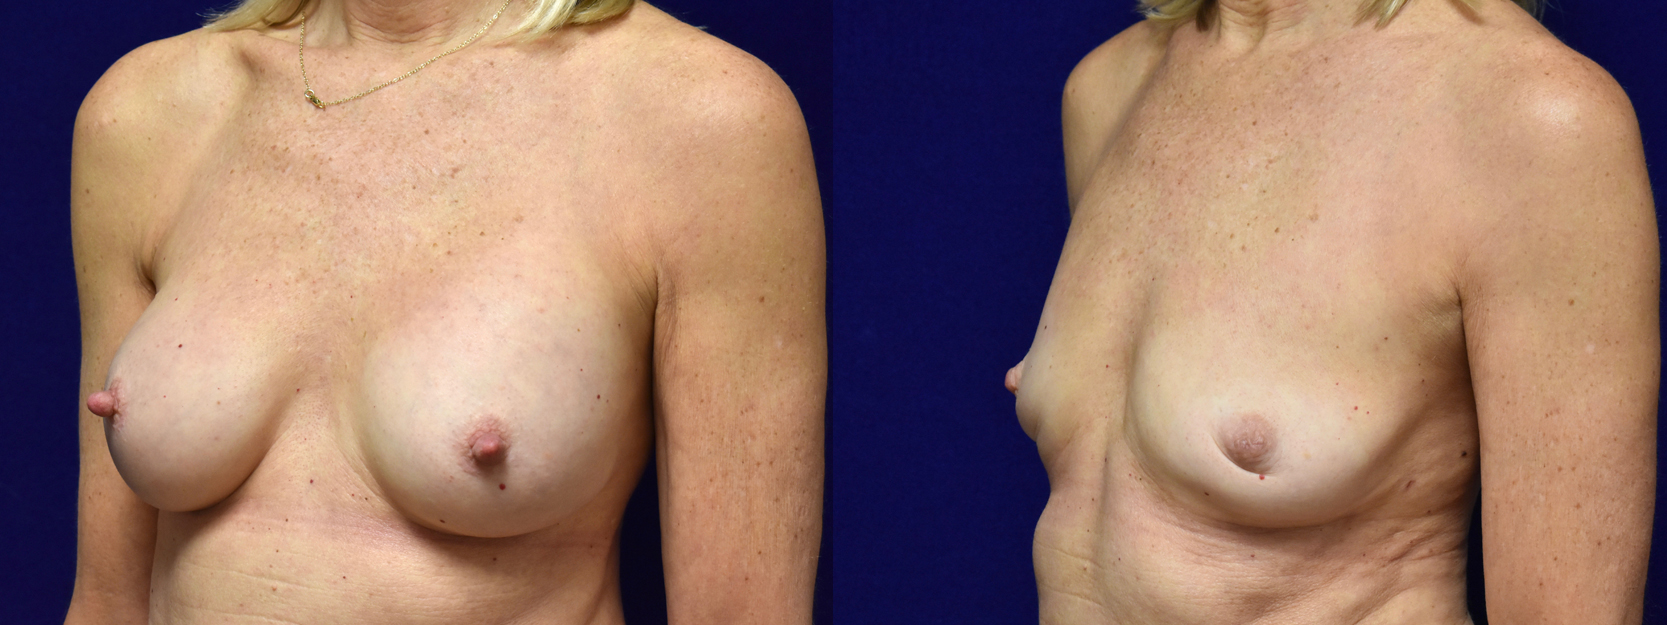 Left 3/4 View - Breast Implant Removal